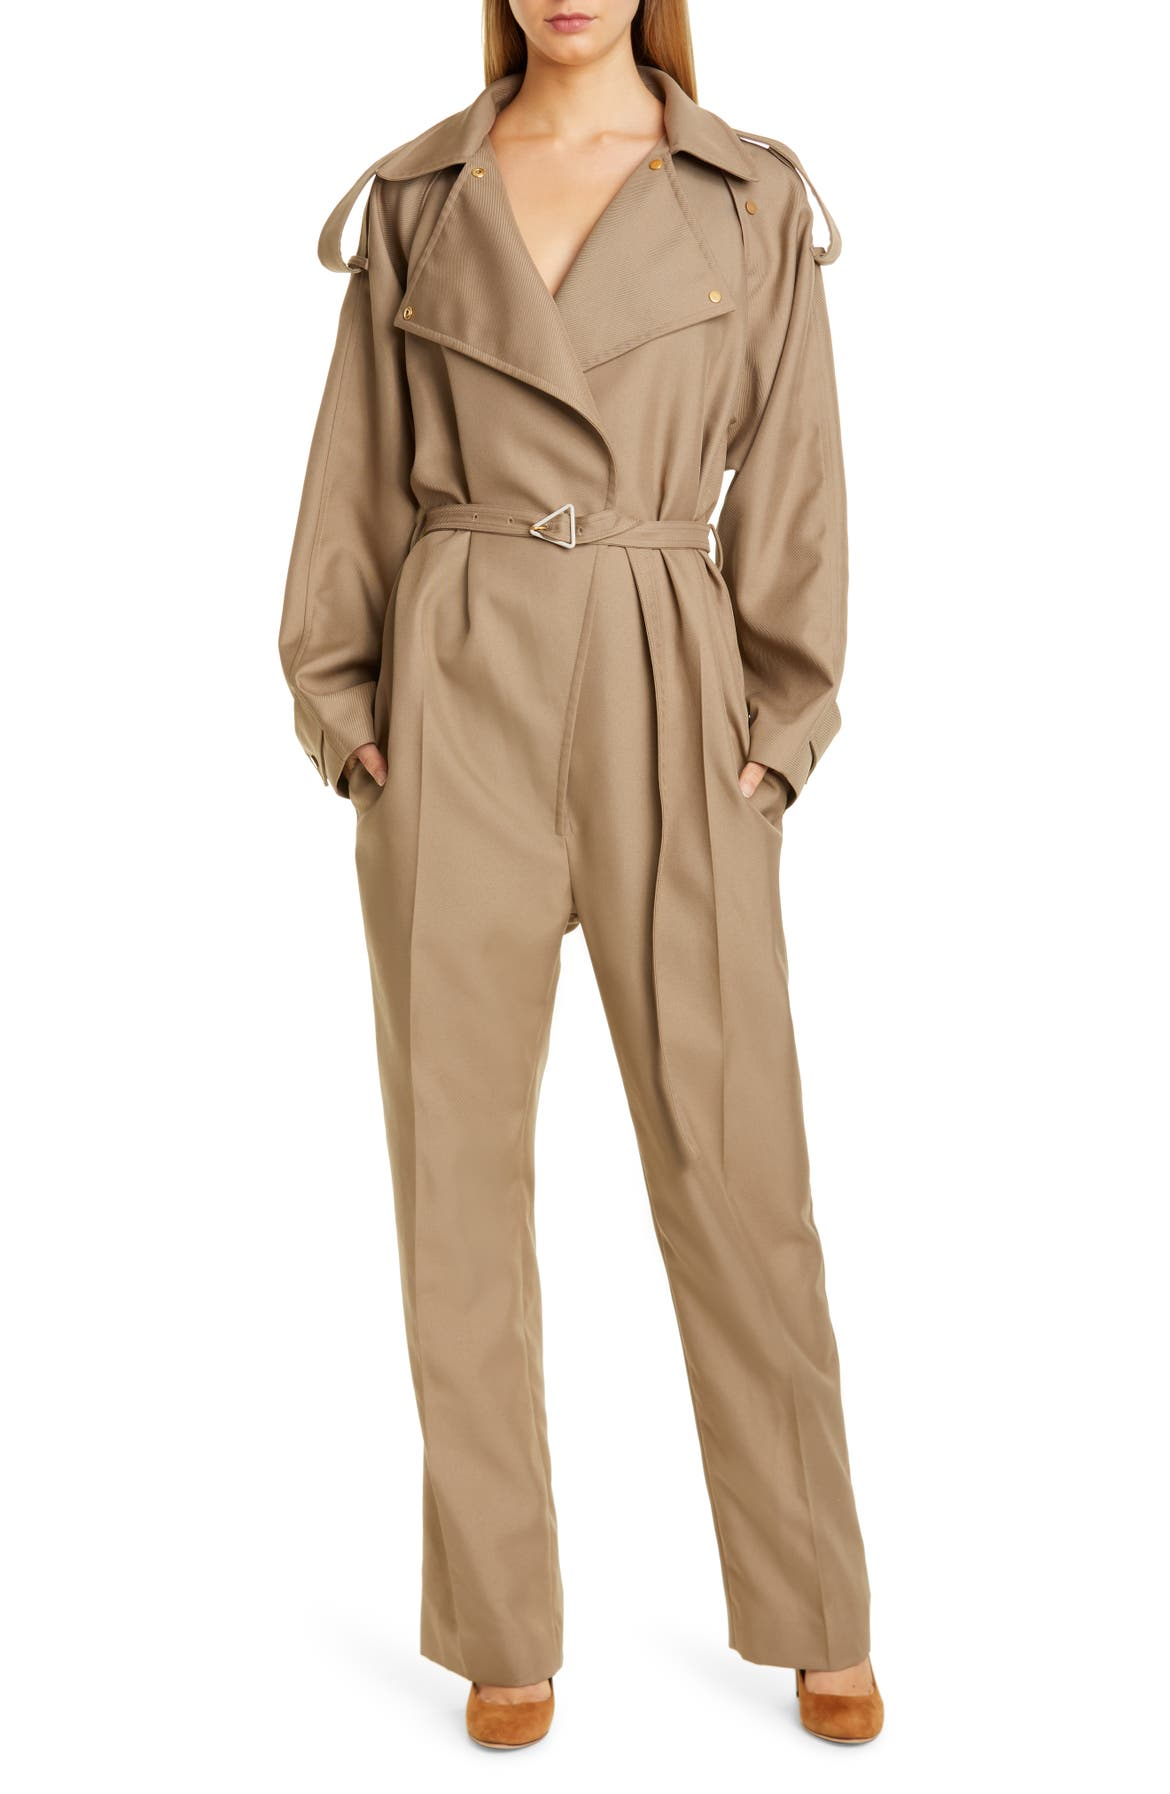 BOTTEGA VENETA Belted Tricot Jumpsuit, Main, color, 9766 DARK SAND